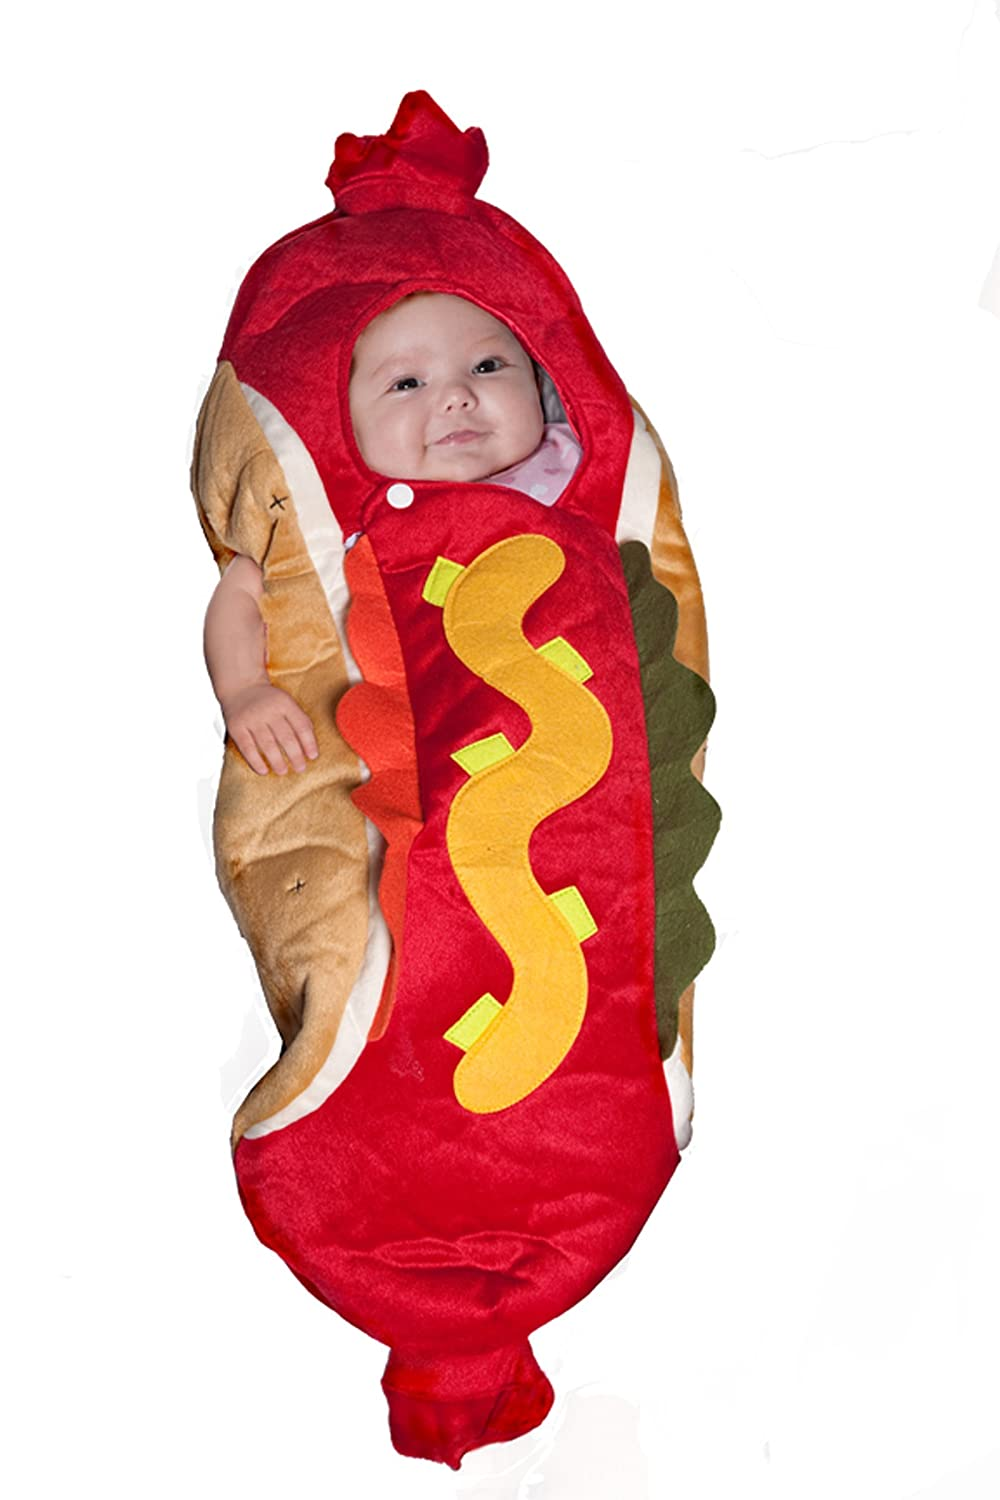 Hot Dog Bunting Halloween Costume NEWBORN-6 MOS.